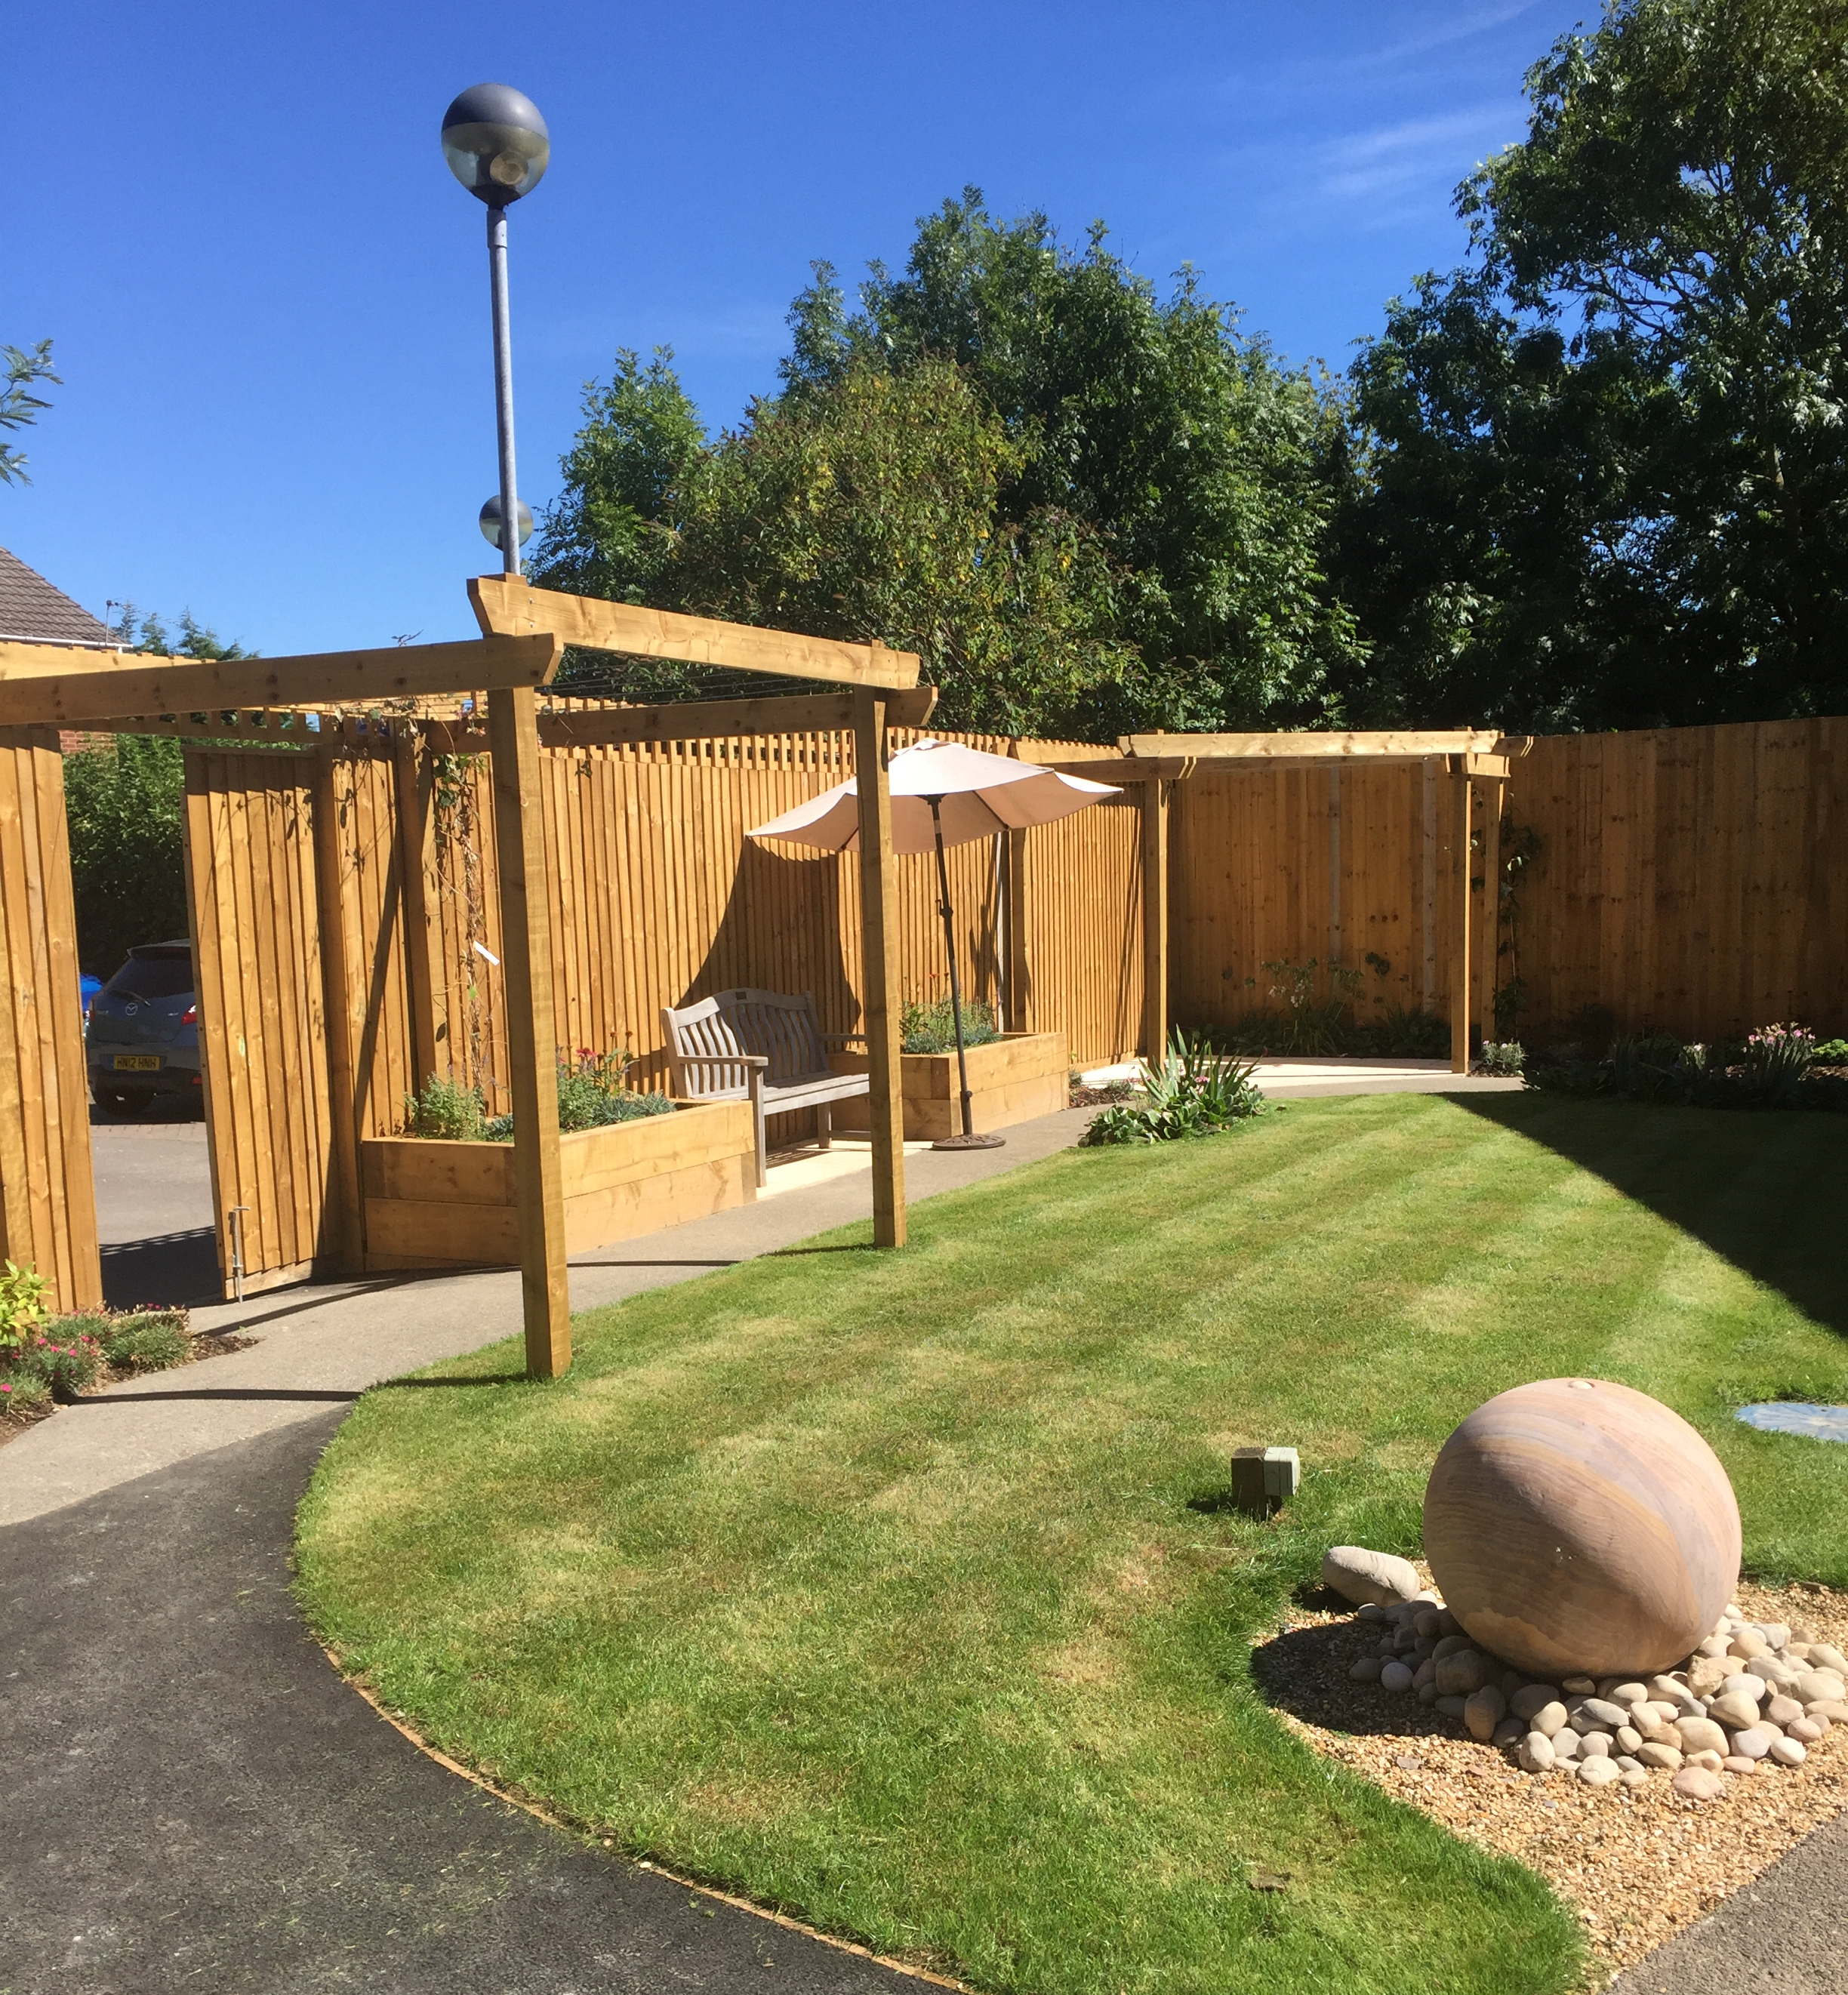 Wessex Grounds Services install Jacksons Fencing in and around Dorset